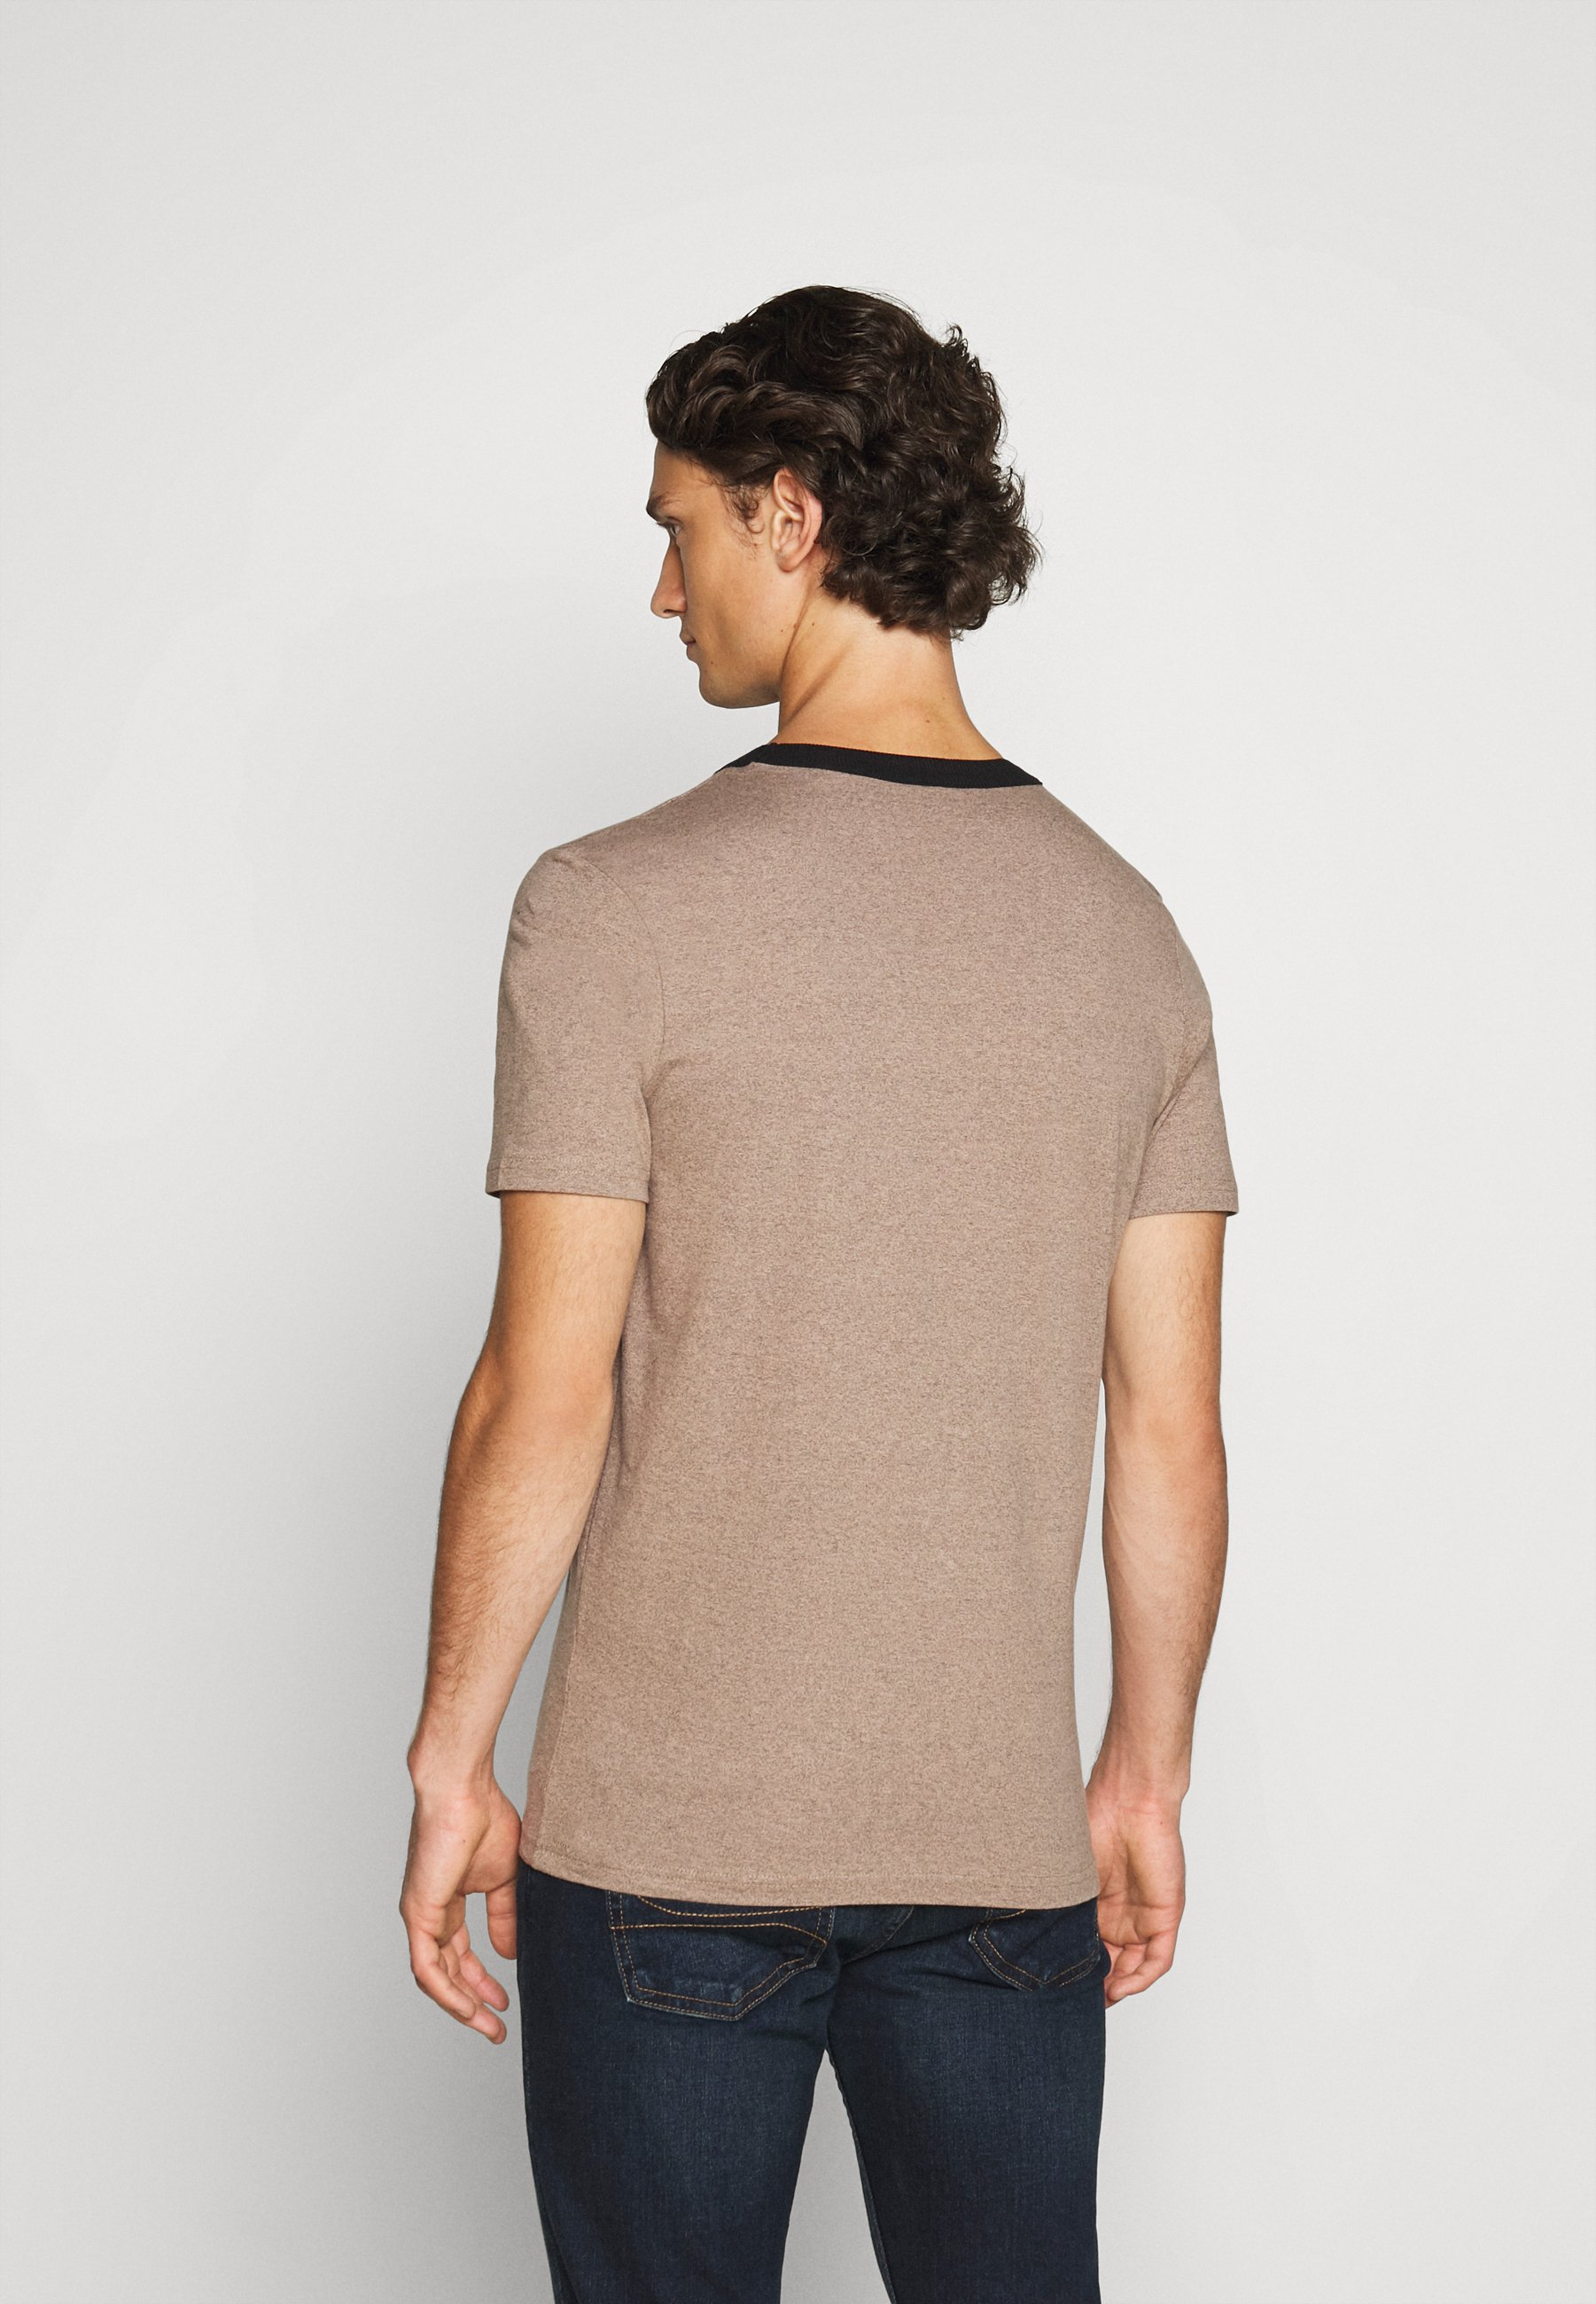 Jack & Jones JCOBLUE TEE CREW NECK - Basic T-shirt - crockery melange bxPhy